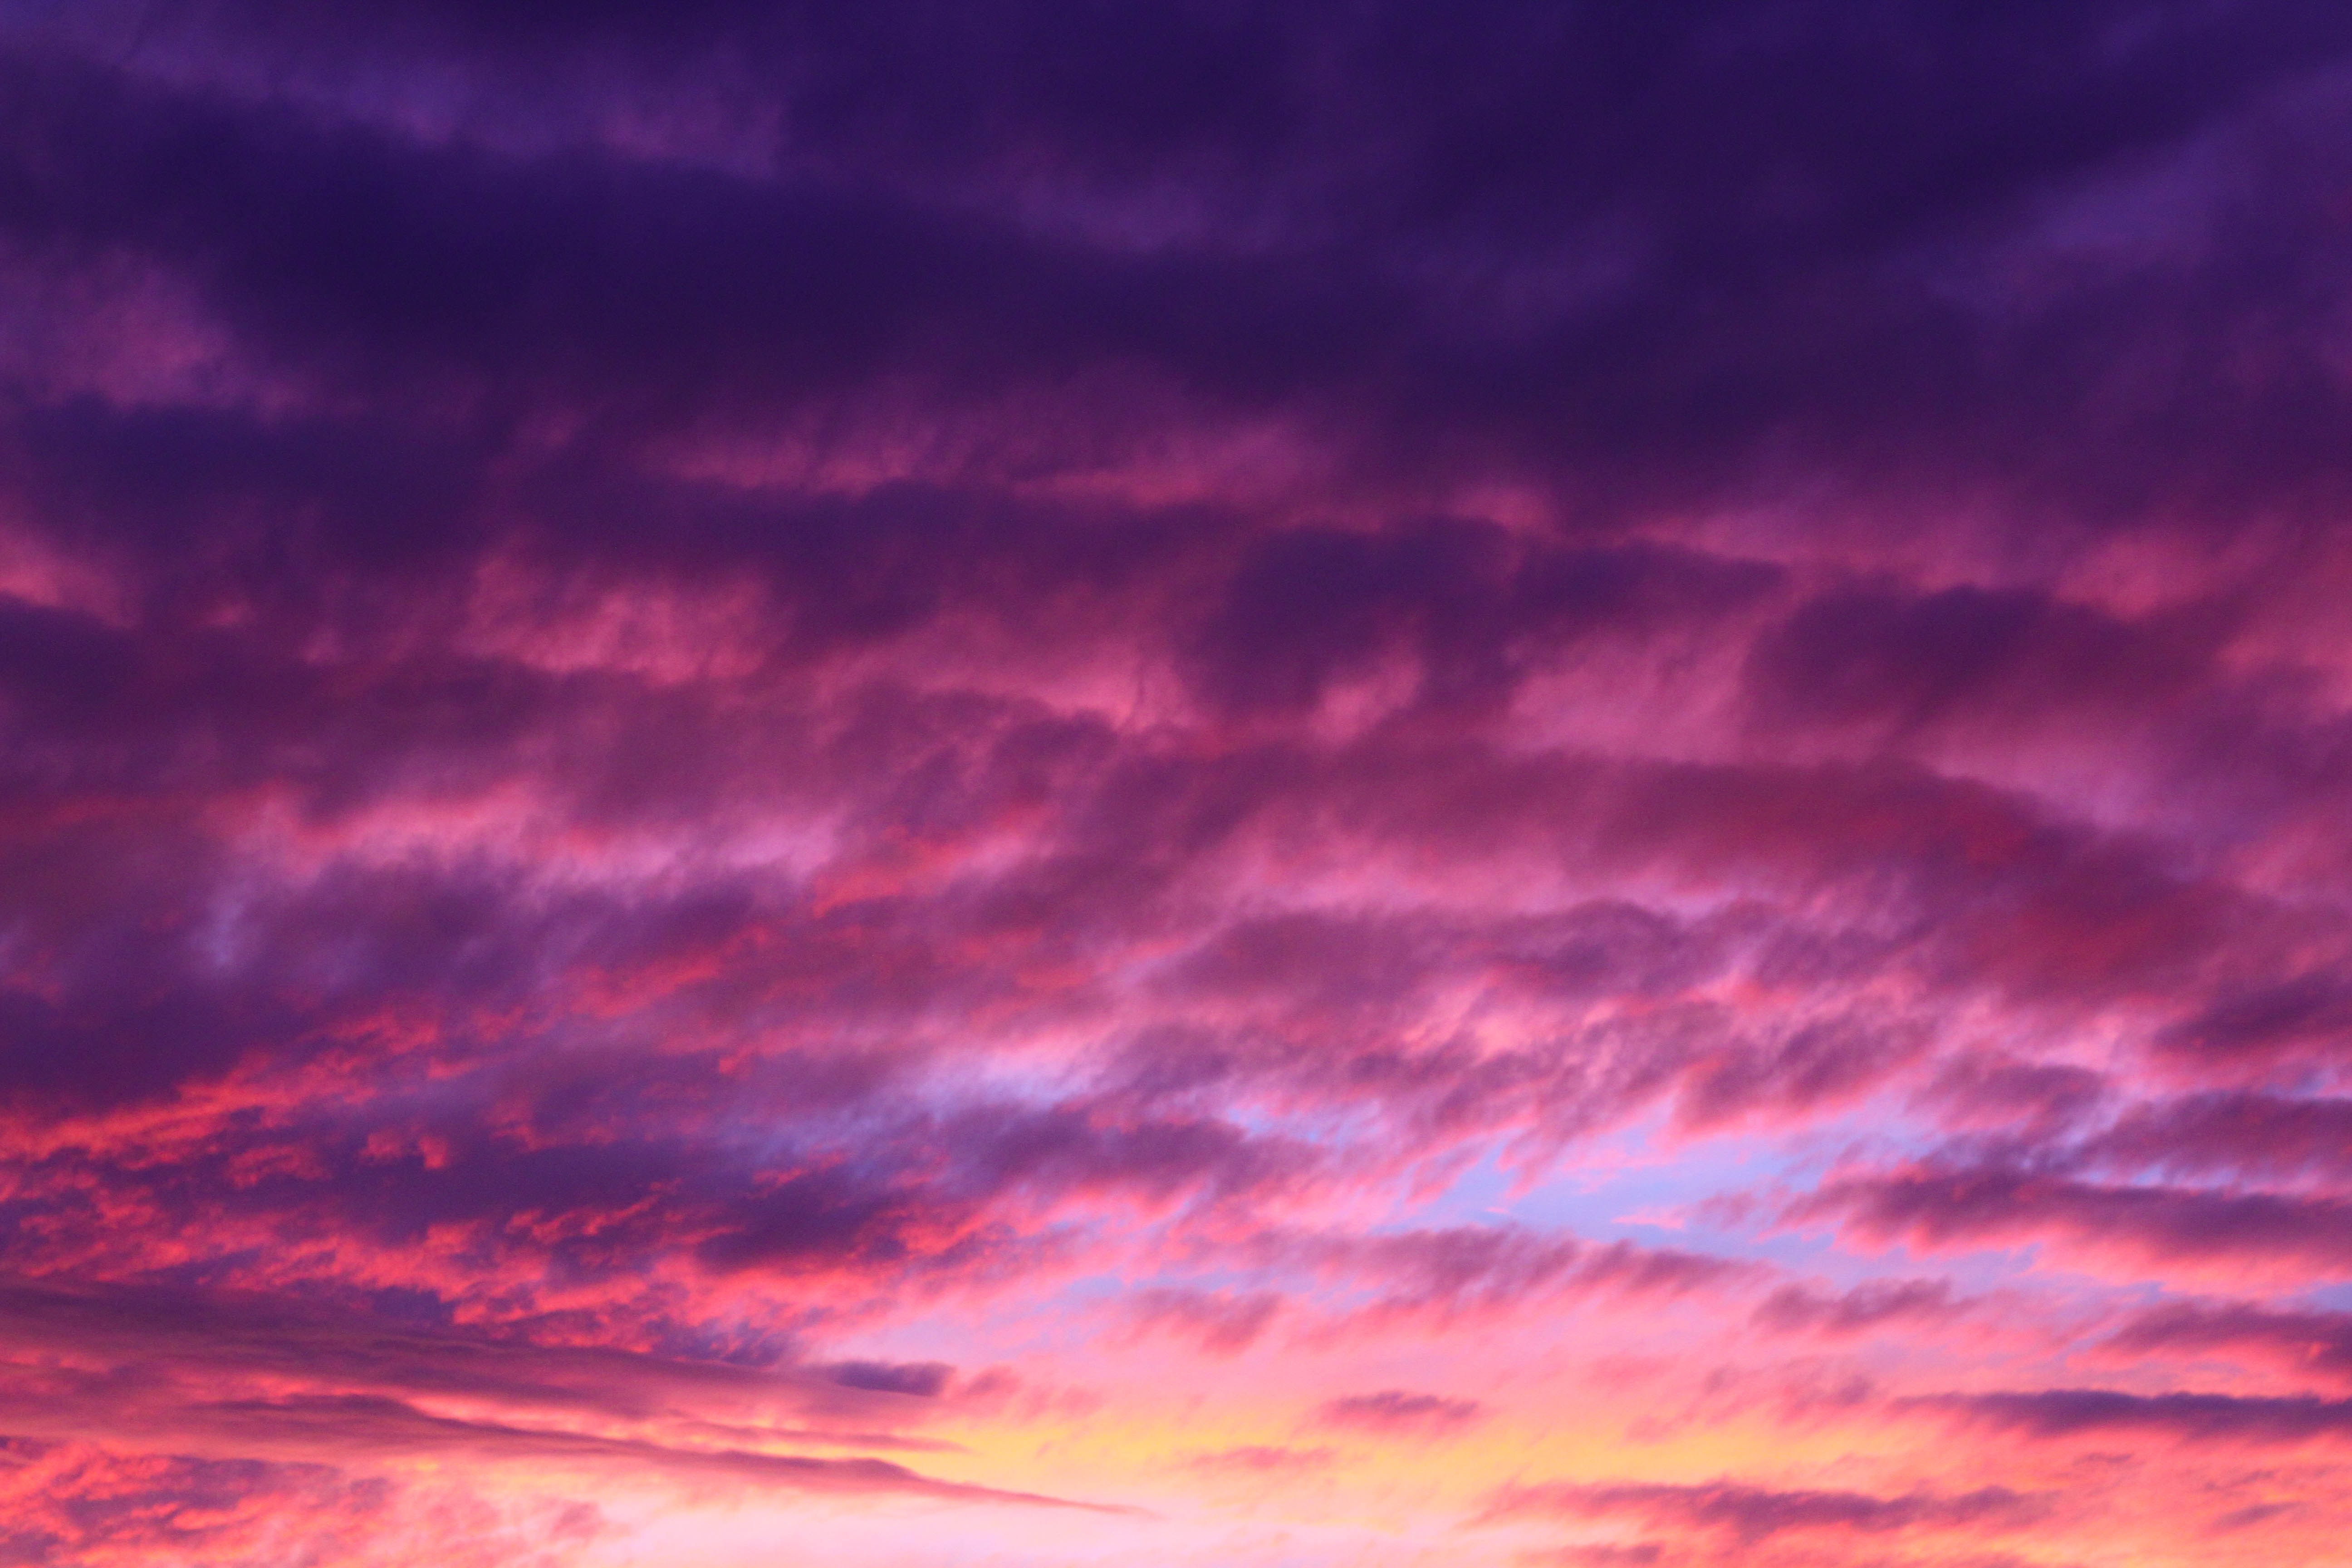 The sunset turns the cloudy sky purple and pink at Bondi Beach